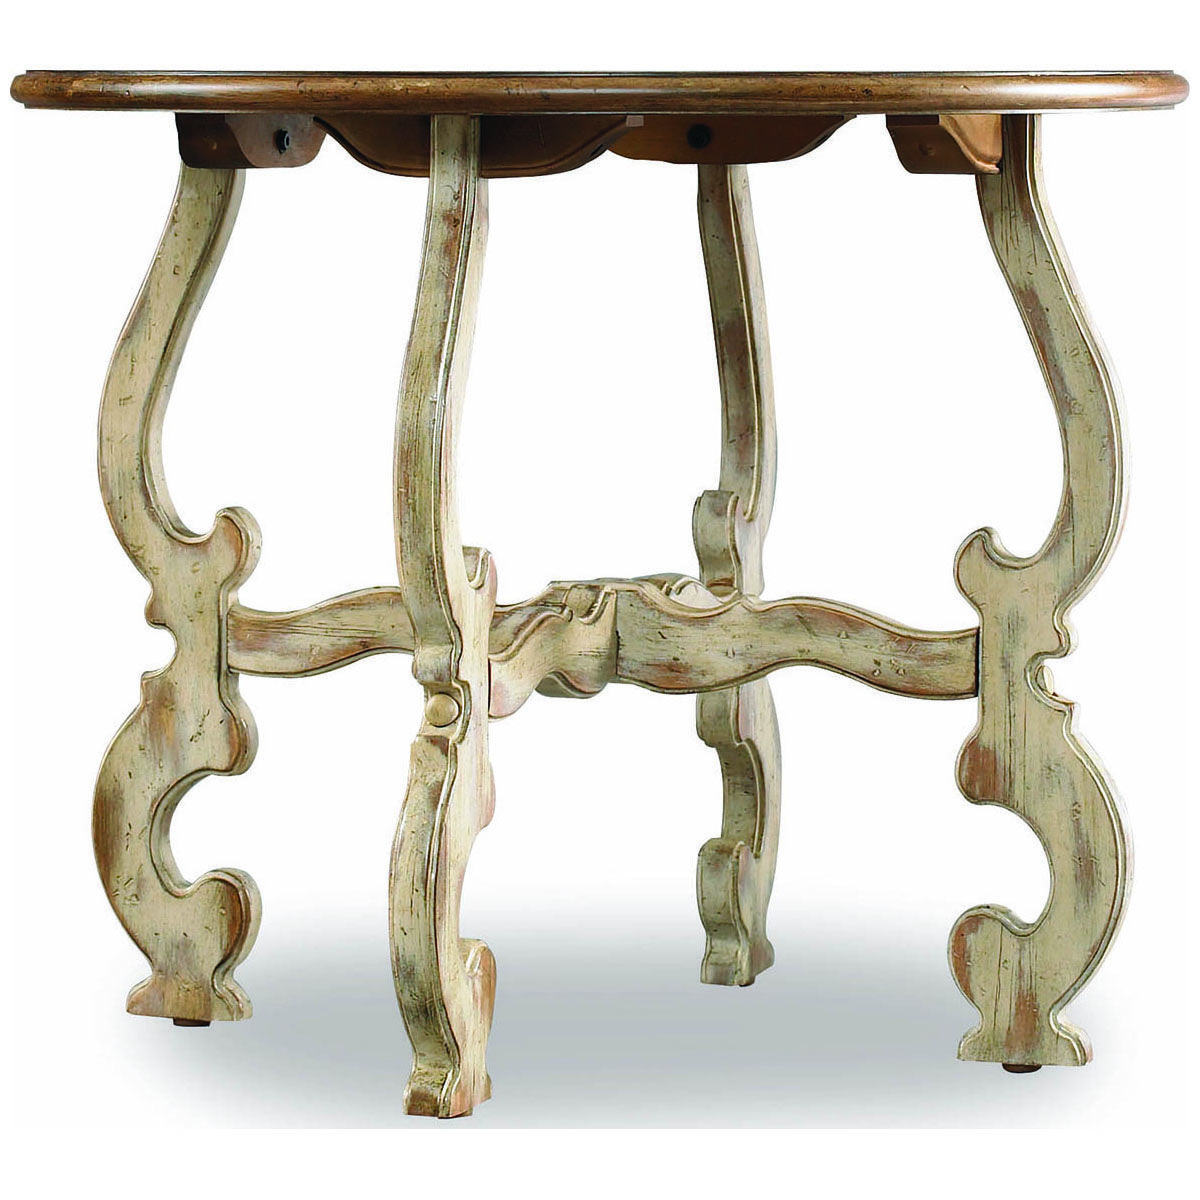 Hooker Furniture Sanctuary Round Dune and Beach Lamp Table 3002-80116